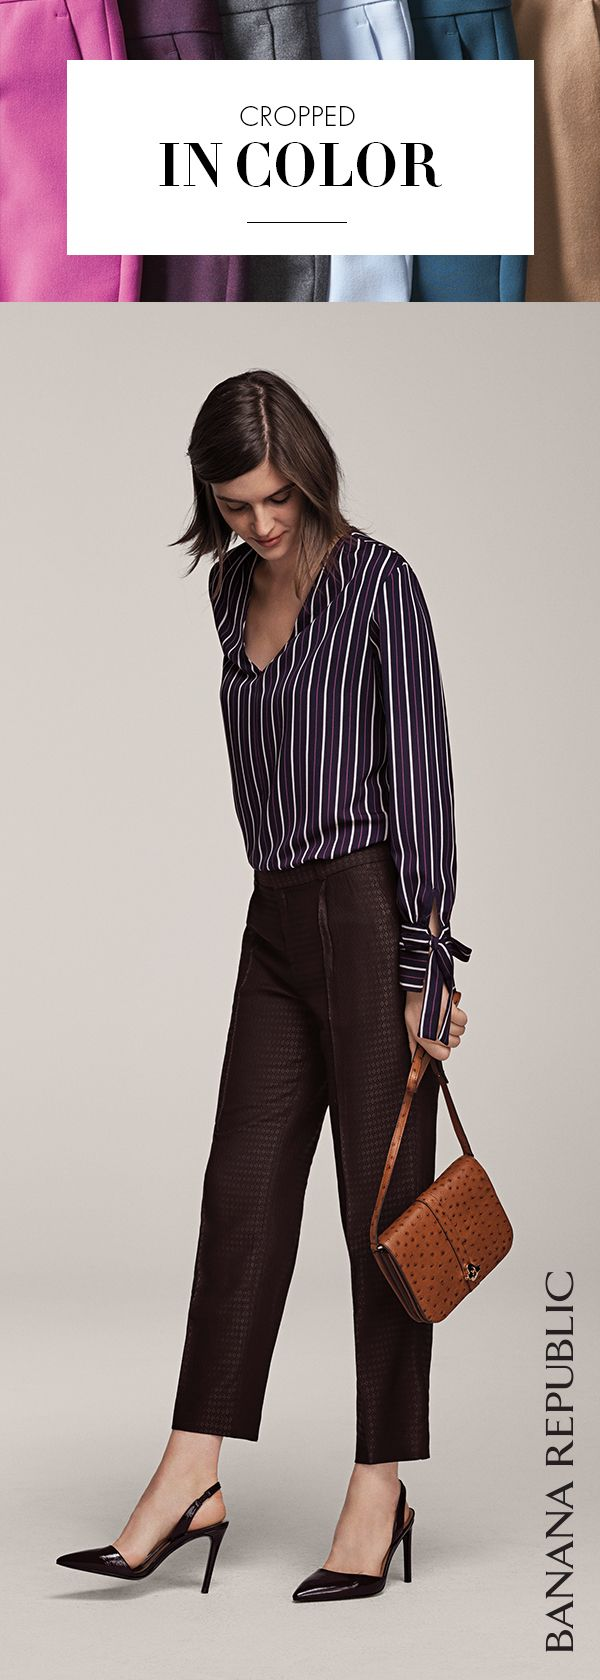 Single pleat. Tailored. Purple print. Yes, these pants are even longer on versatility in a new shorter cropped length. Wear them like black only better for 9-5 & beyond with feminine blouses, moto jackets and your favorite chic heels. Shop pants. | Banana Republic